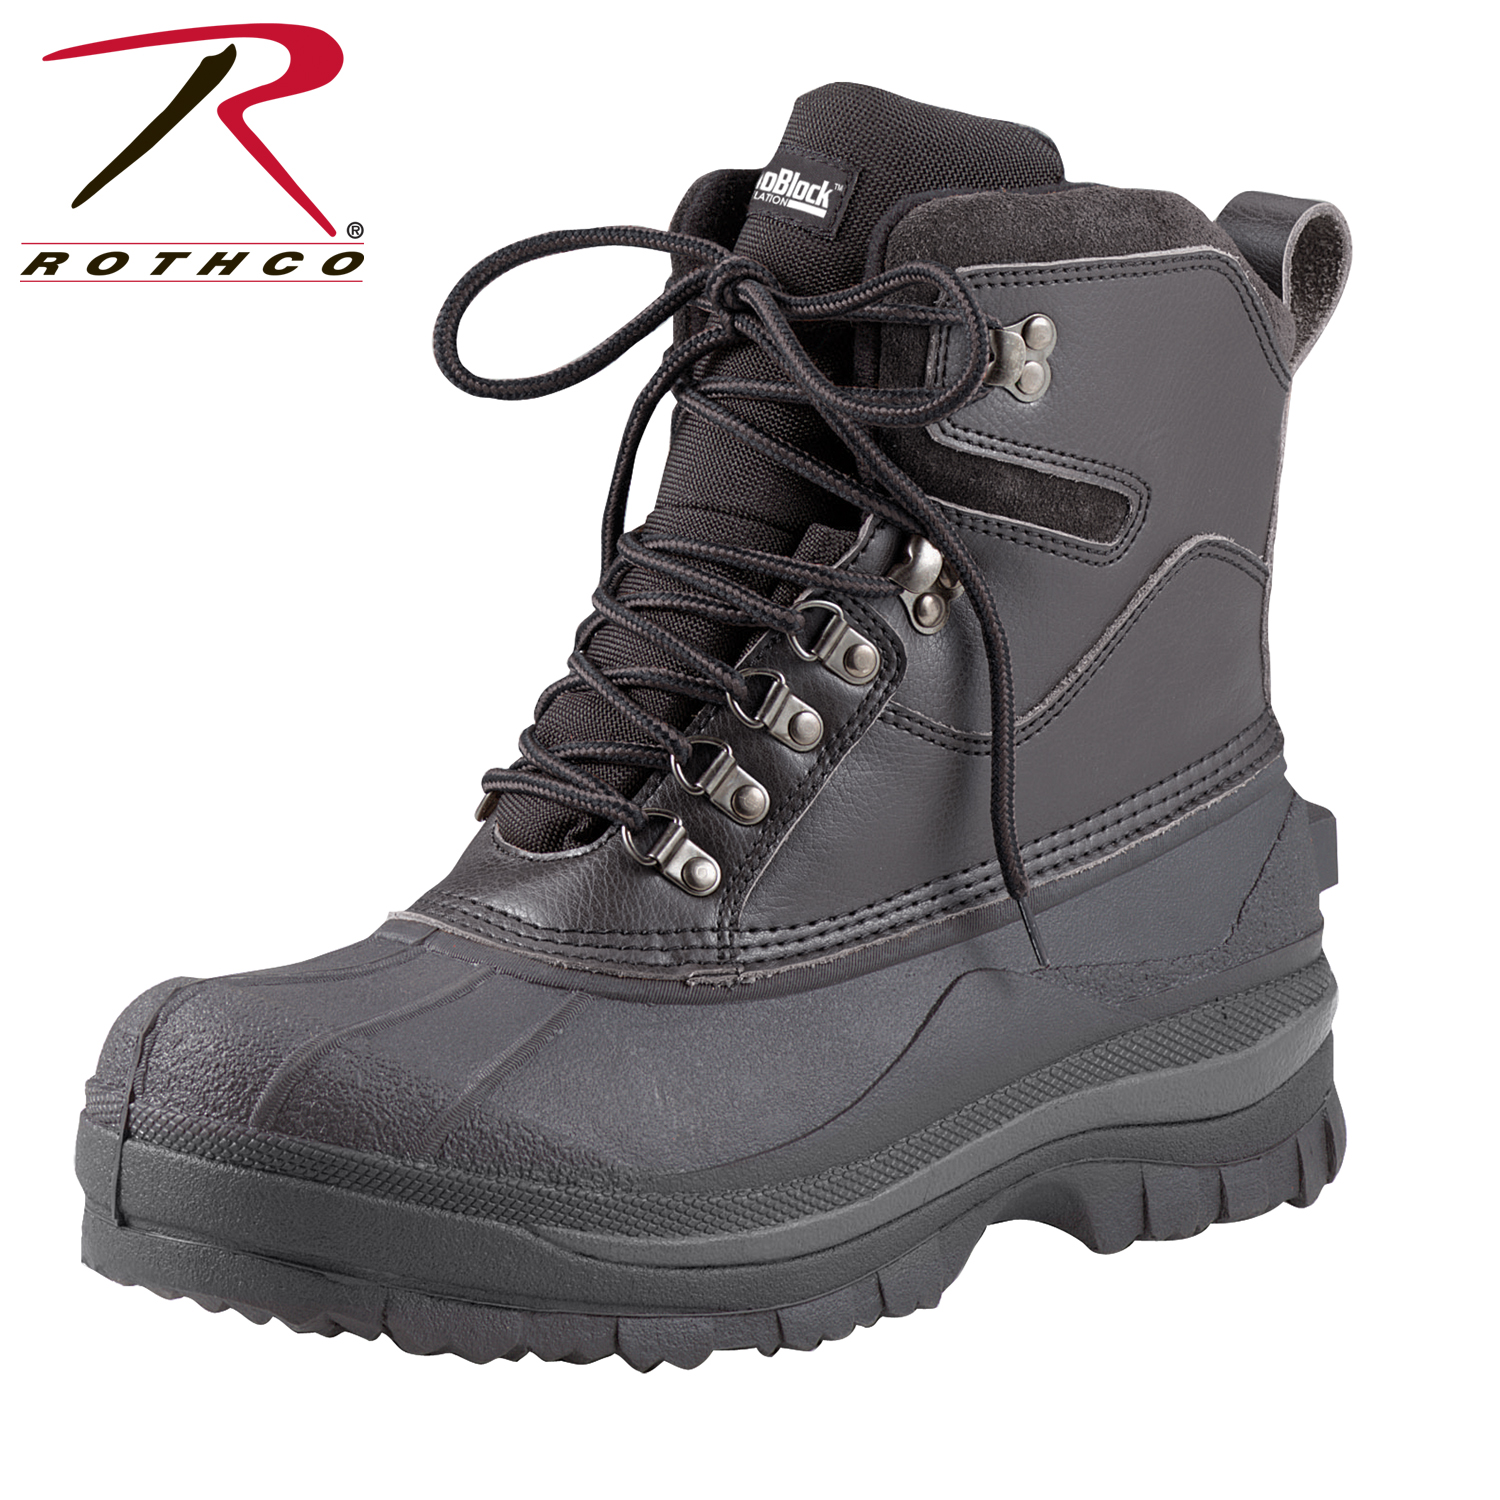 3d729aa9e6d Rothco Extreme Cold Weather Hiking Boots